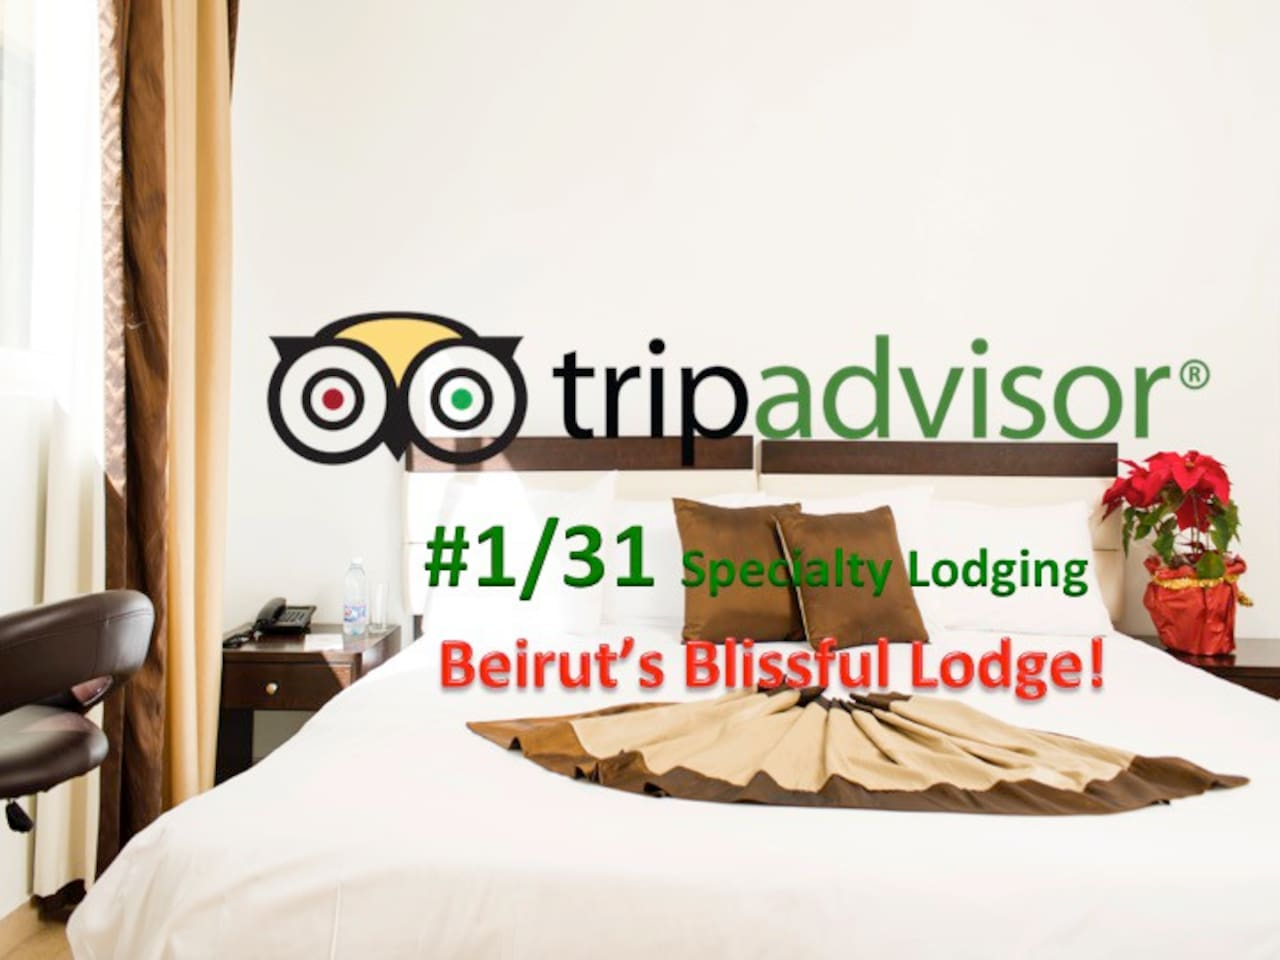 Bliss 3000 rated #1/31 Specialty Lodging in Beirut.